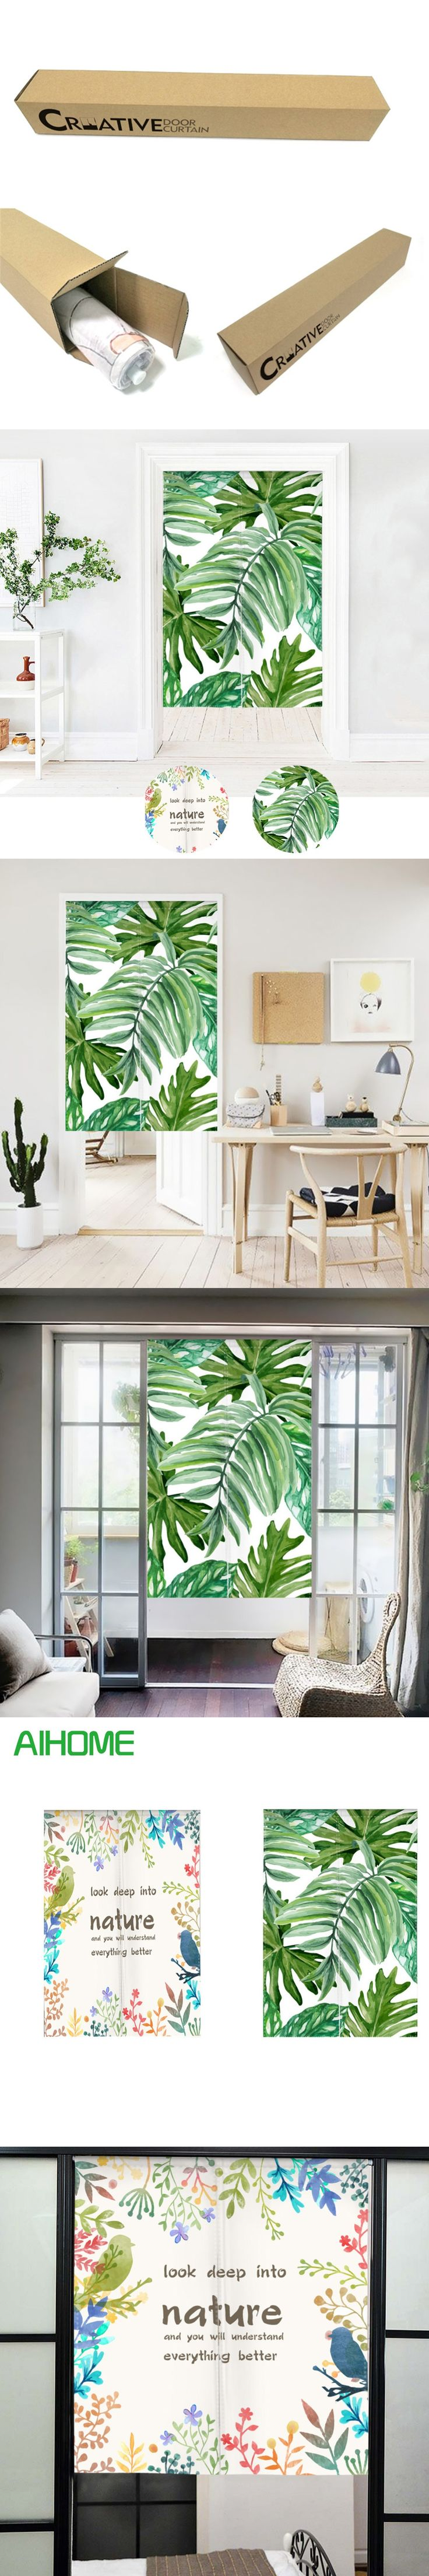 Japanese Style NOREN Curtain Tropical Plants Green Leaves Canvas Door Curtain for Kitchen Store Tapestry 85x100/85X140/85X180cm